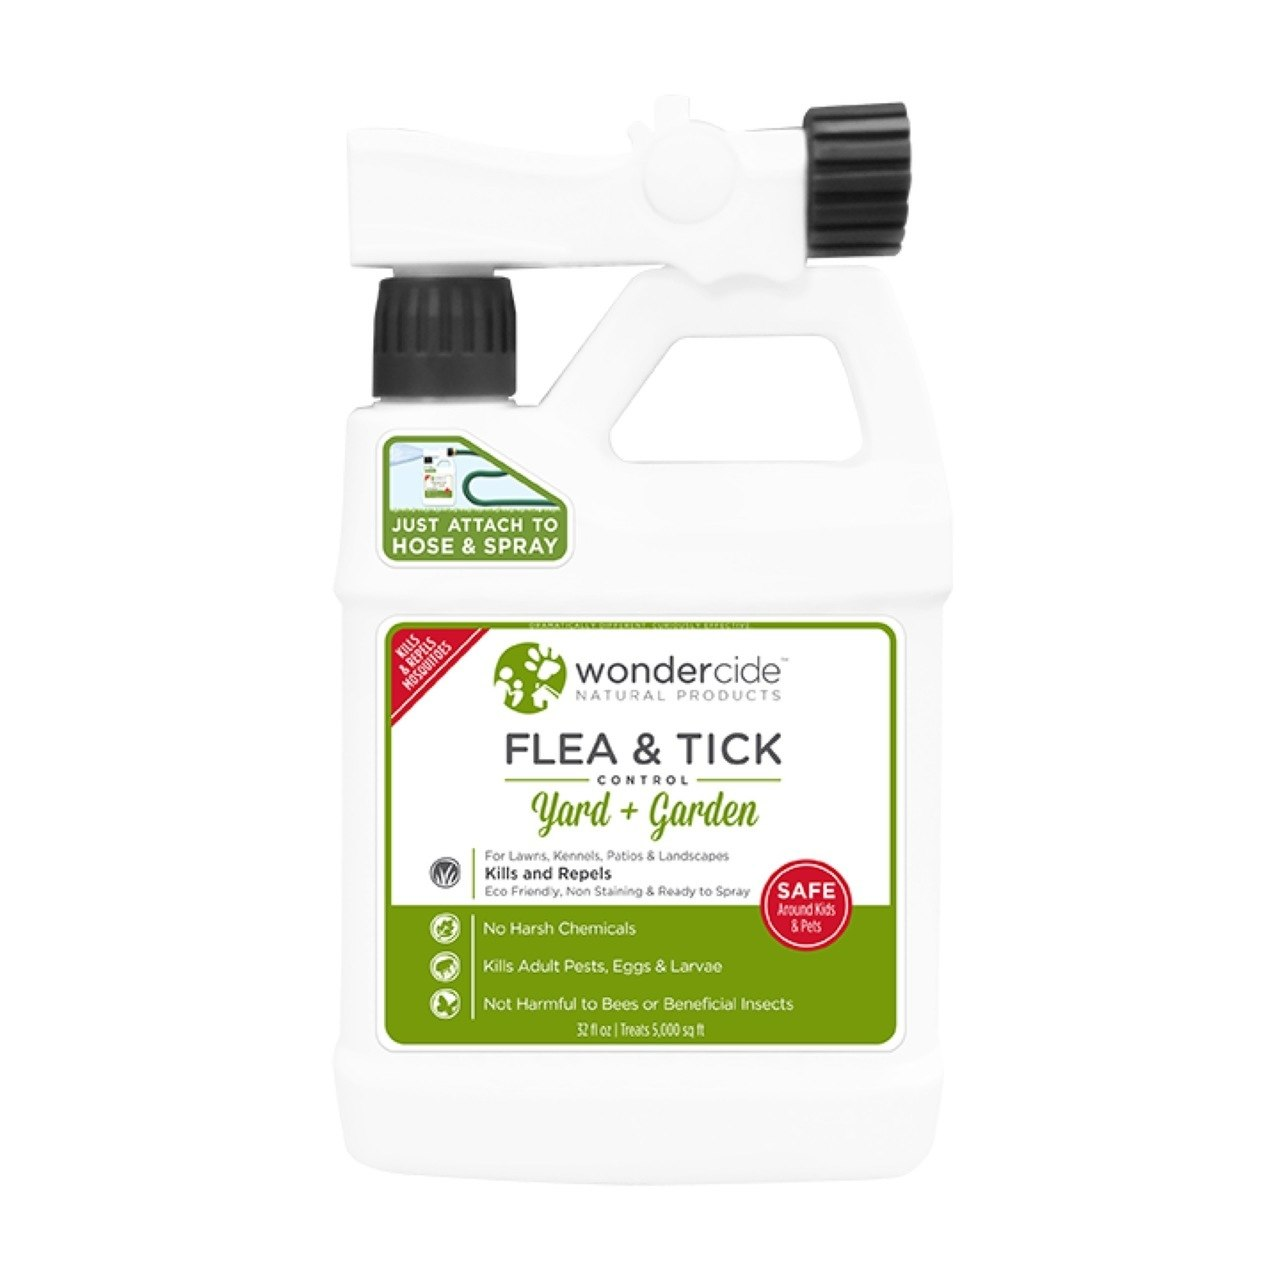 Wondercide Flea & Tick Control Yard & Garden Ready To Use Insecticide